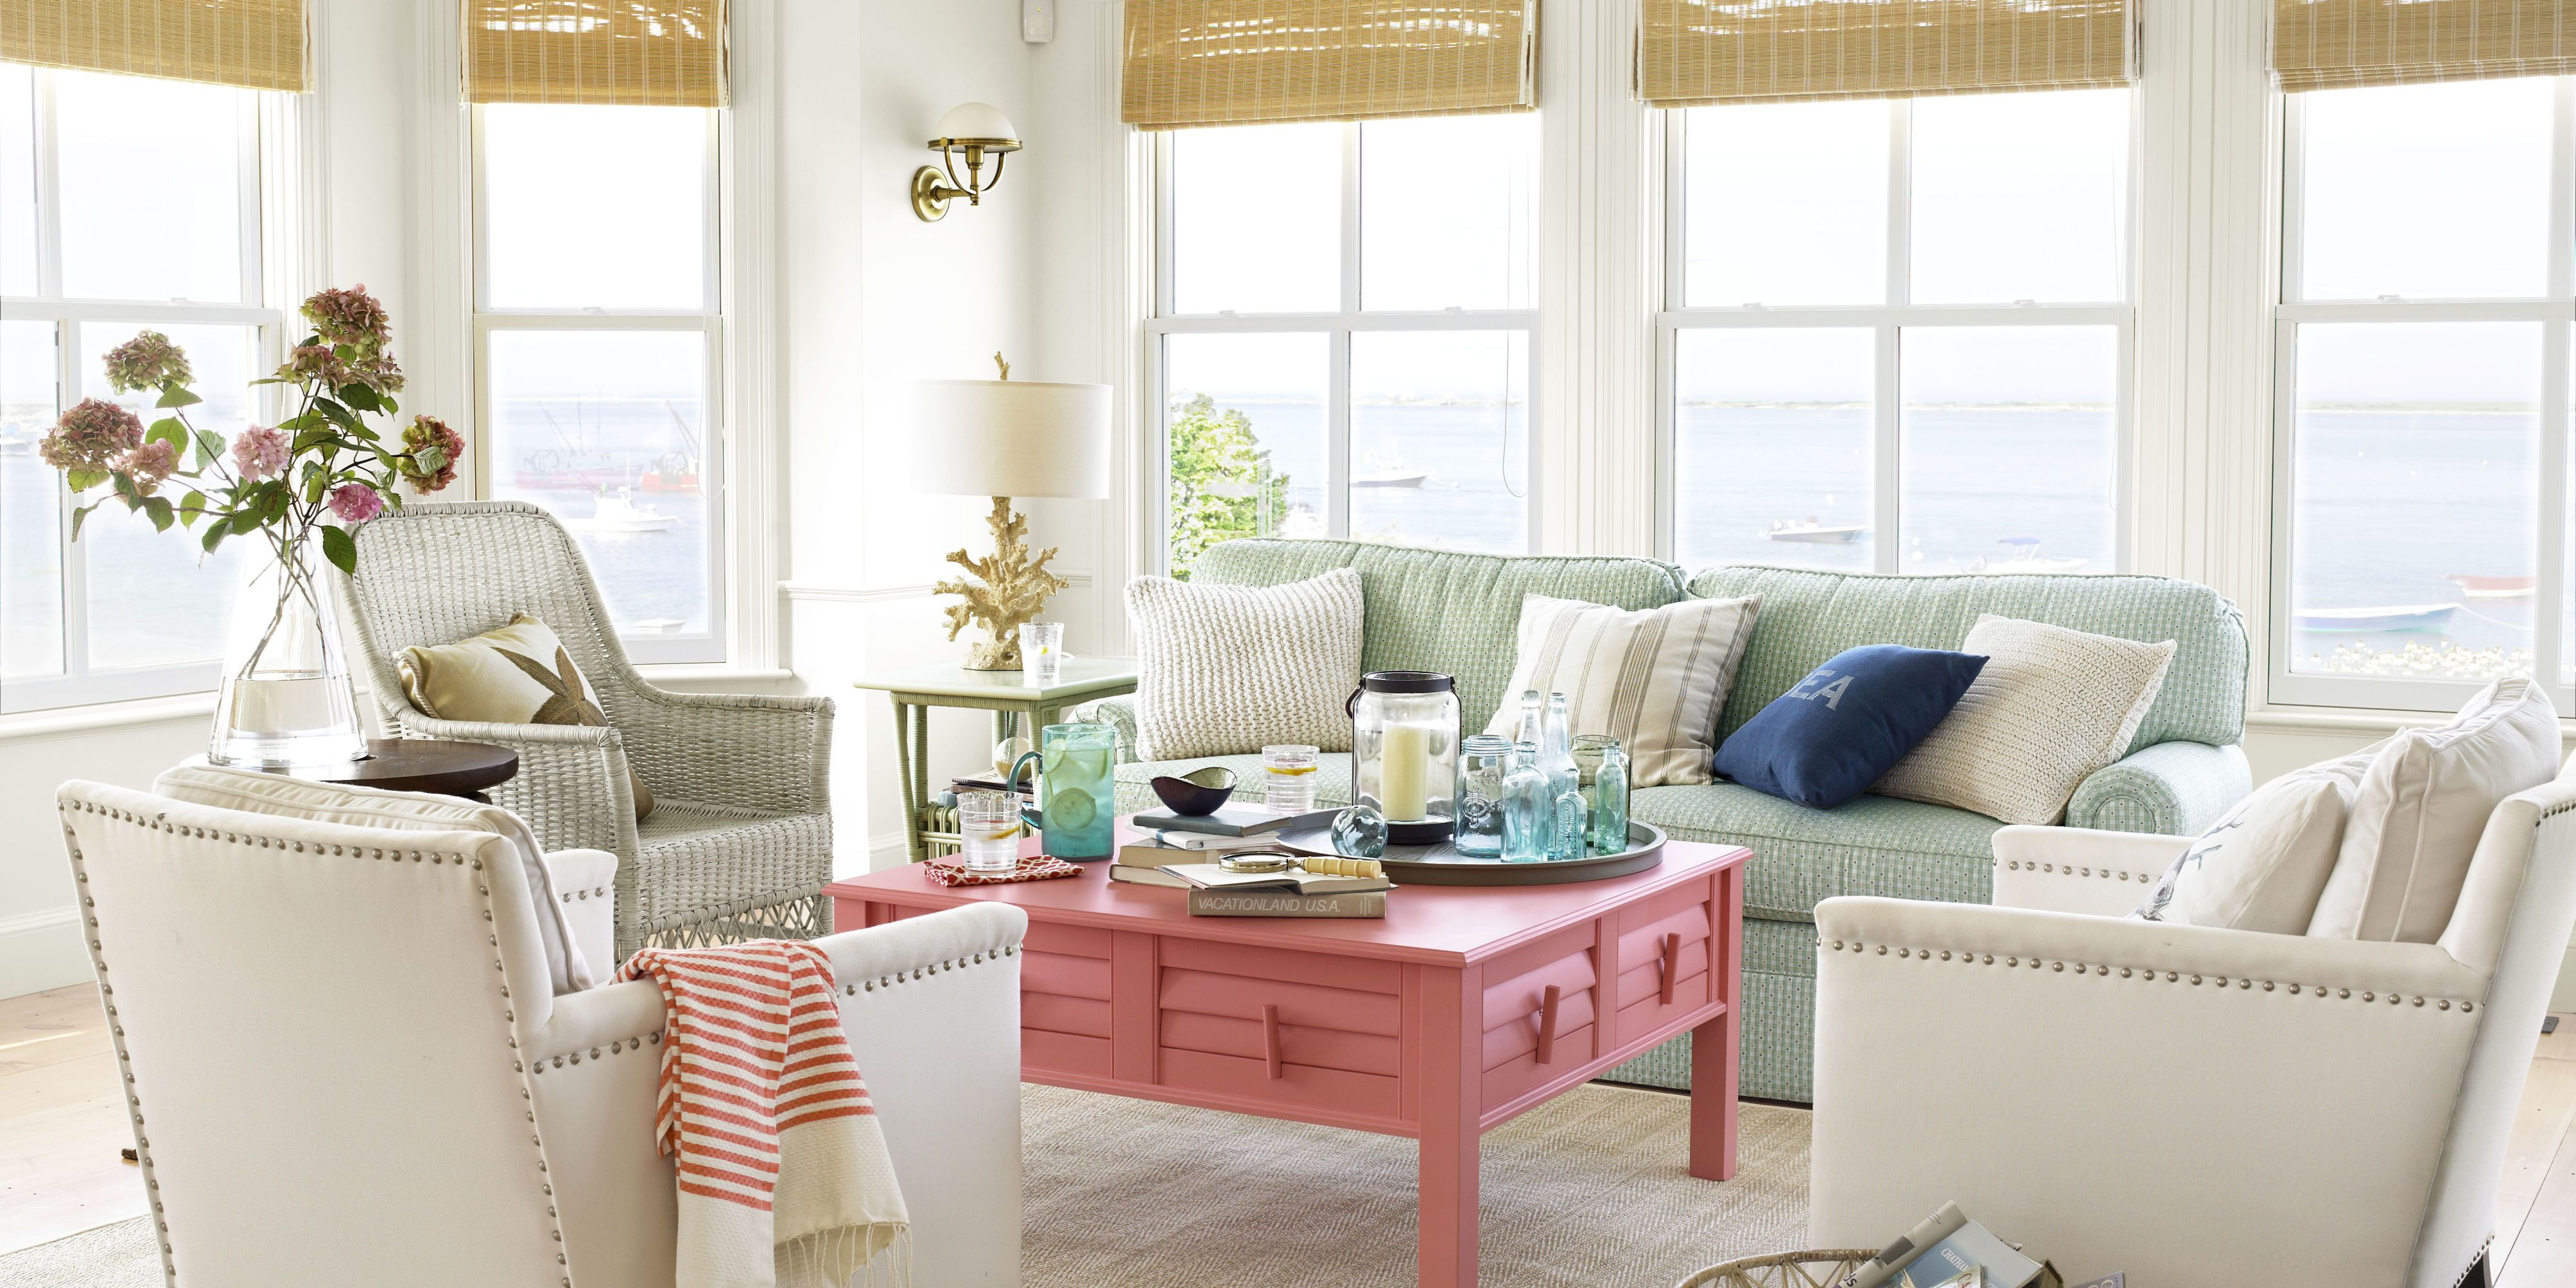 Enhance The Natural Beauty Of Your Home With Sea Themed Accents, Crisp  Whites, And Splashes Of Bold Color.